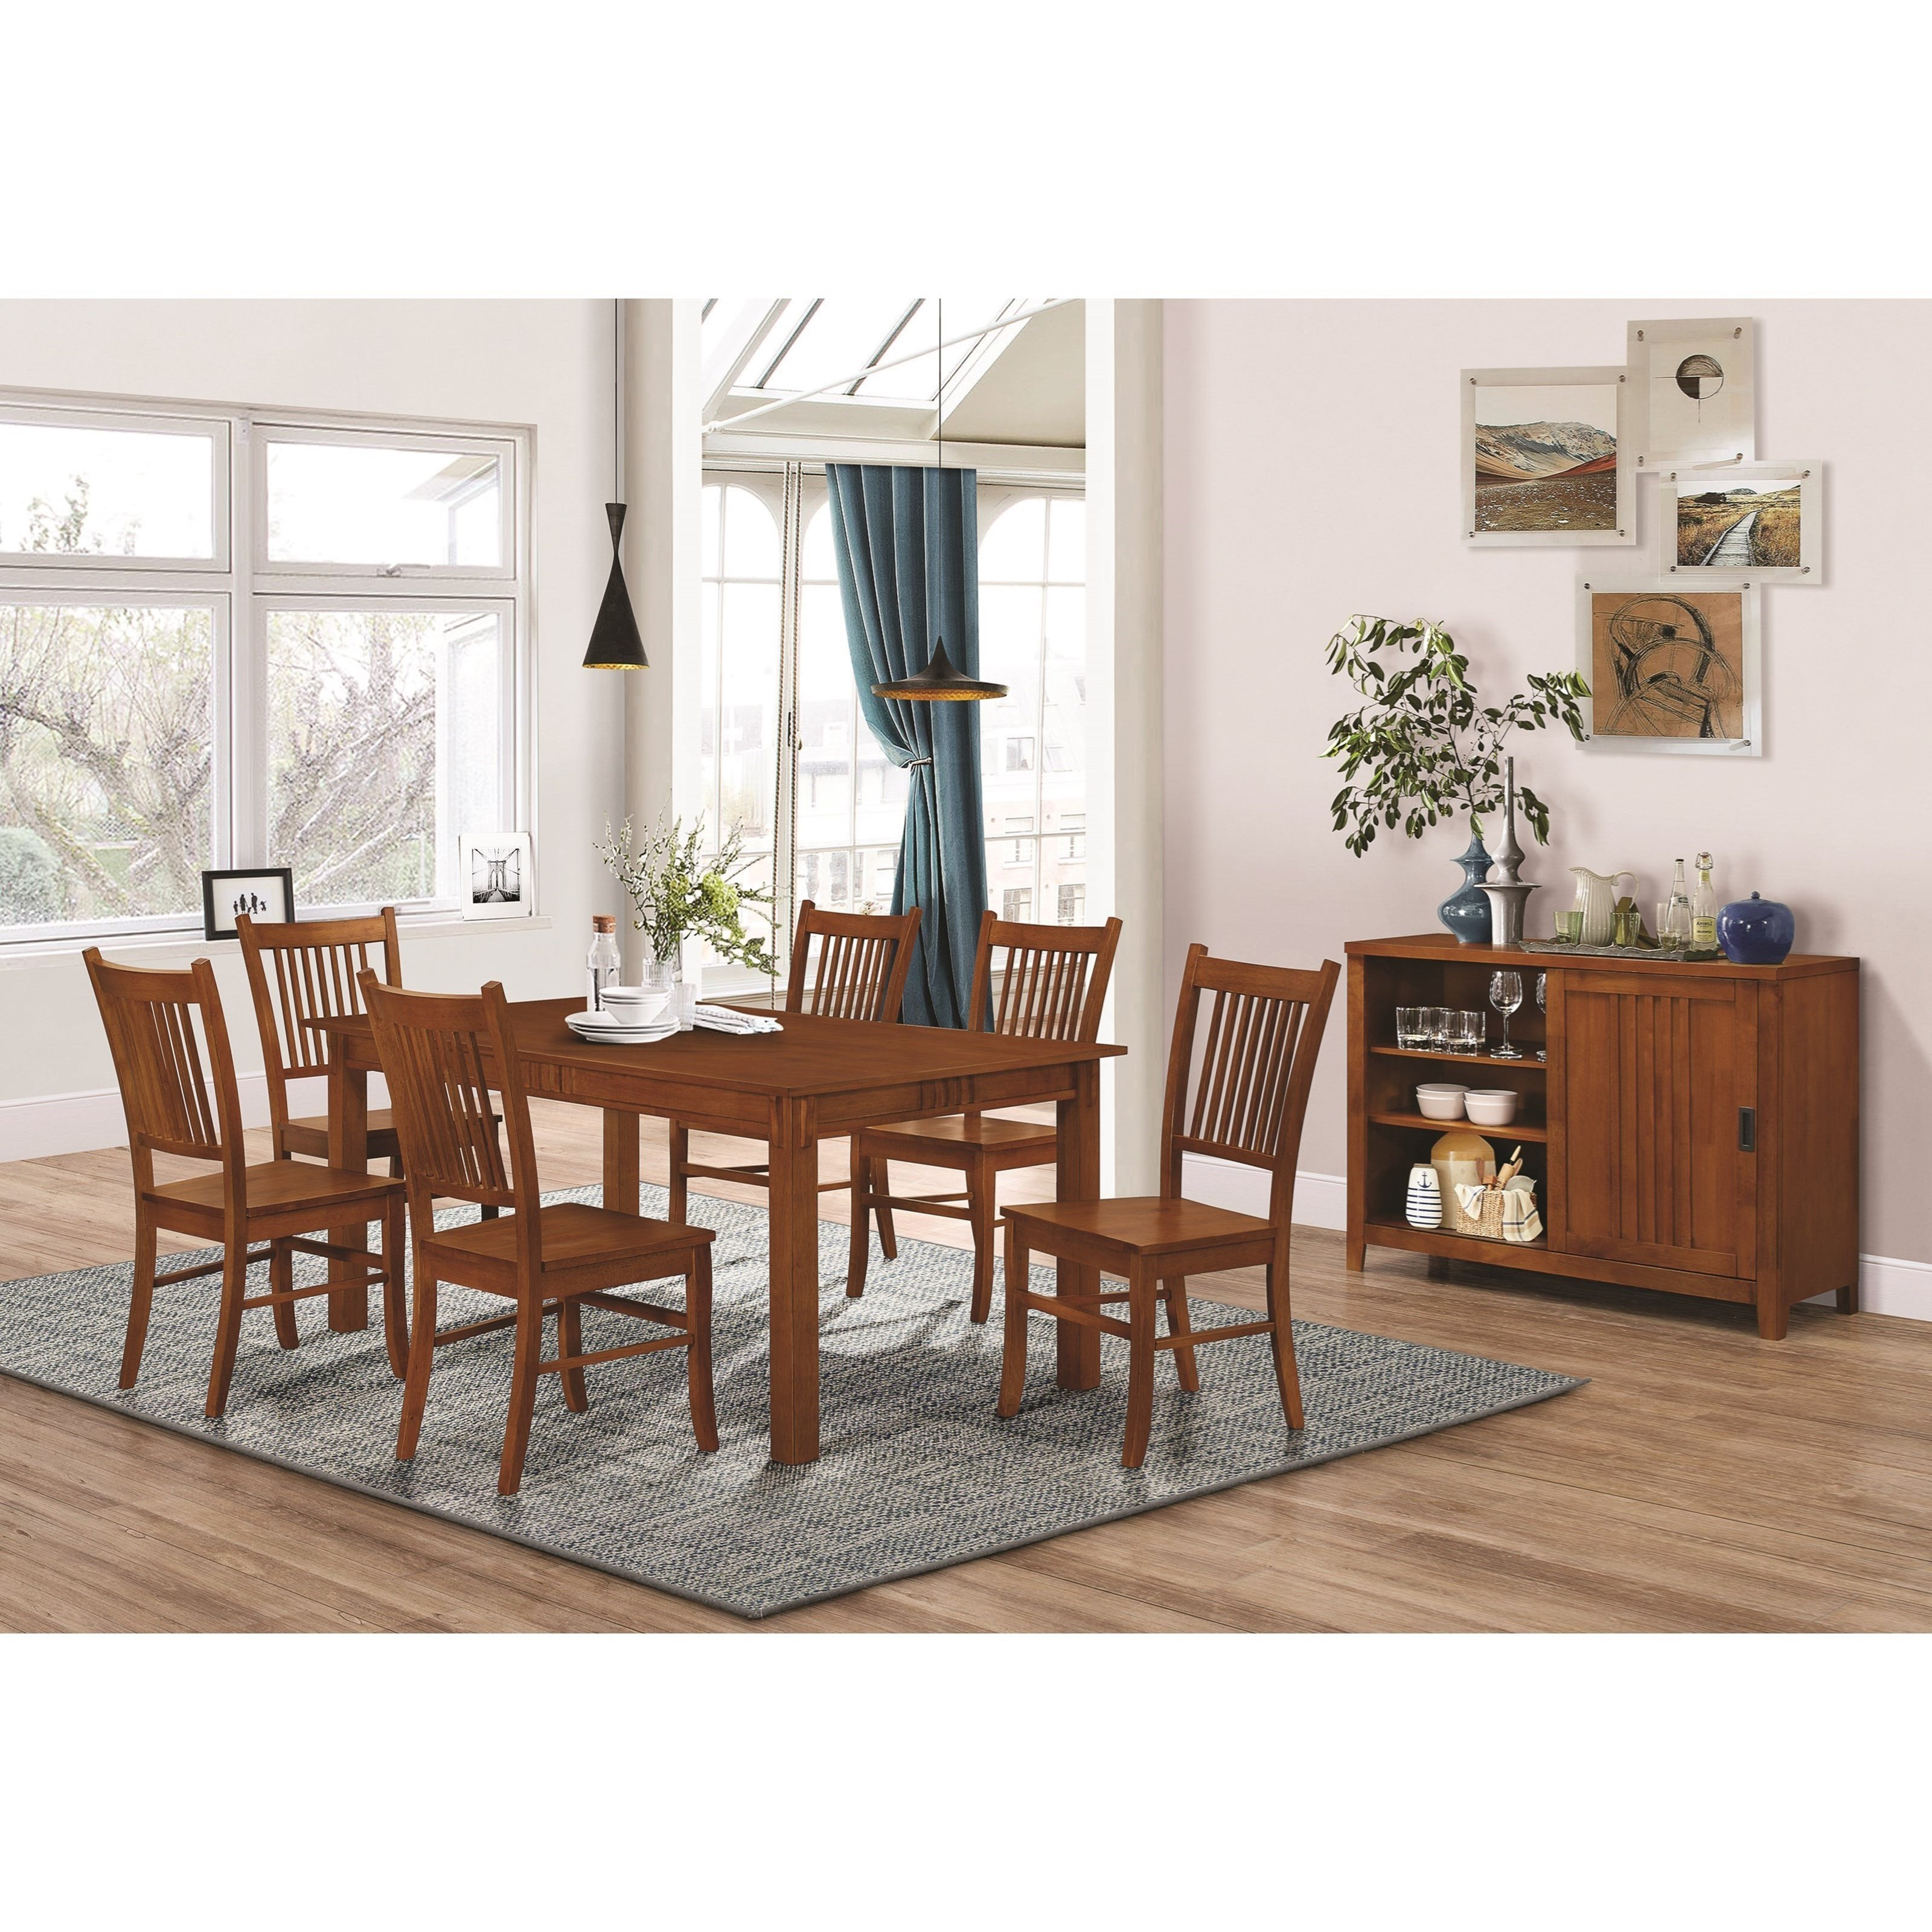 Marbrisa Casual Dining Room Group by Coaster at Lapeer Furniture & Mattress Center